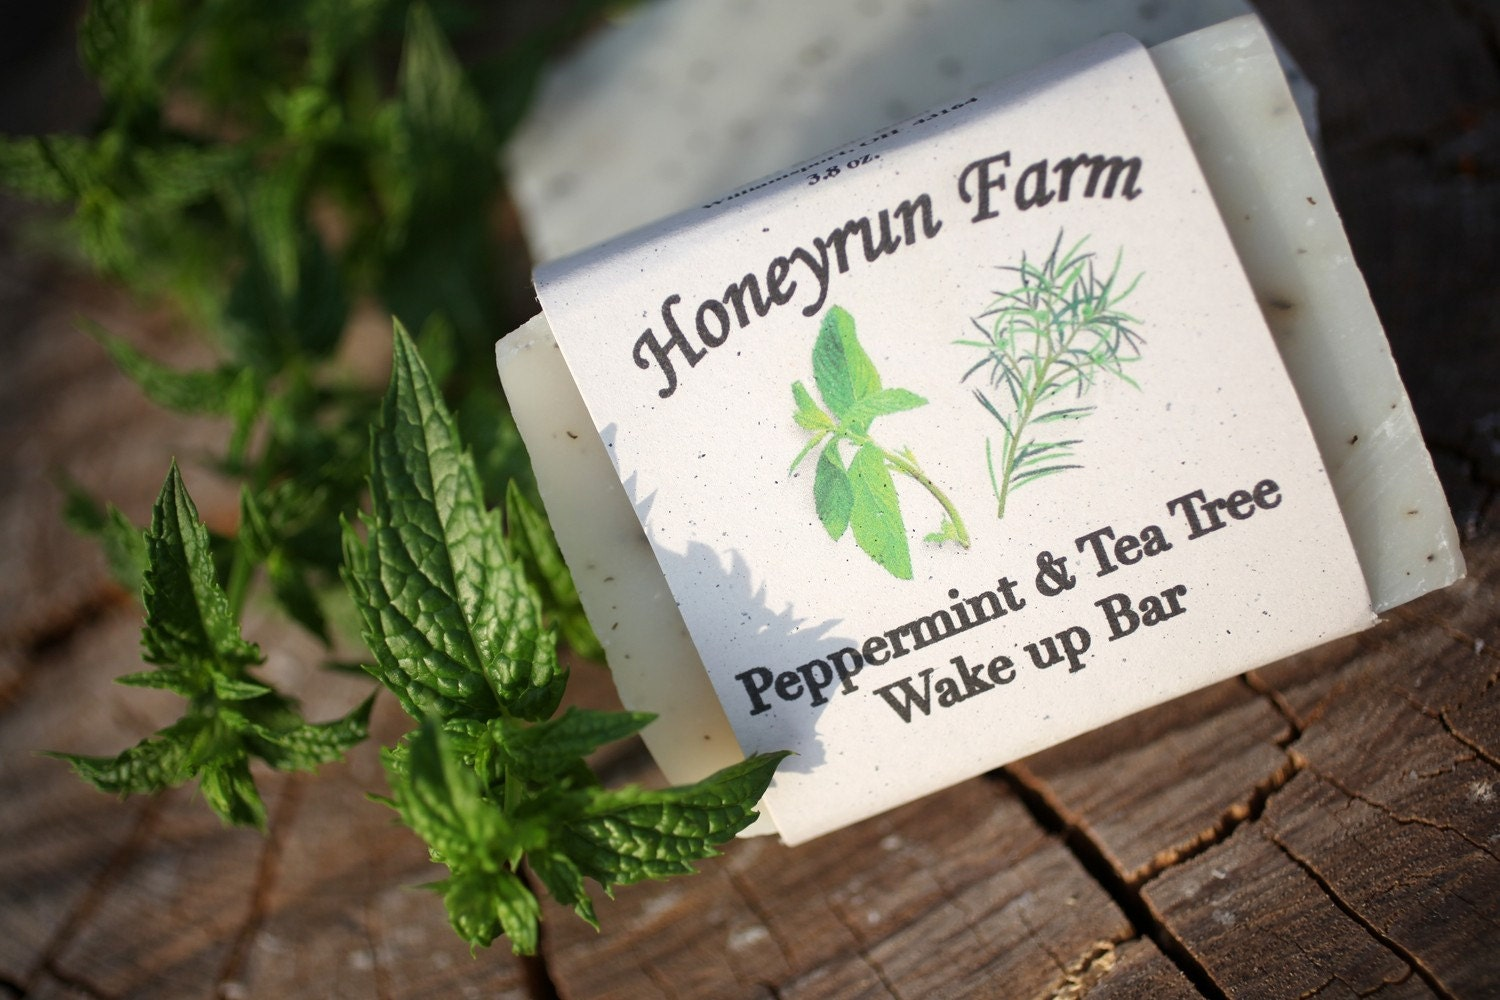 Peppermint & Tea Tree Wake Up Bar - made with honey and beeswax